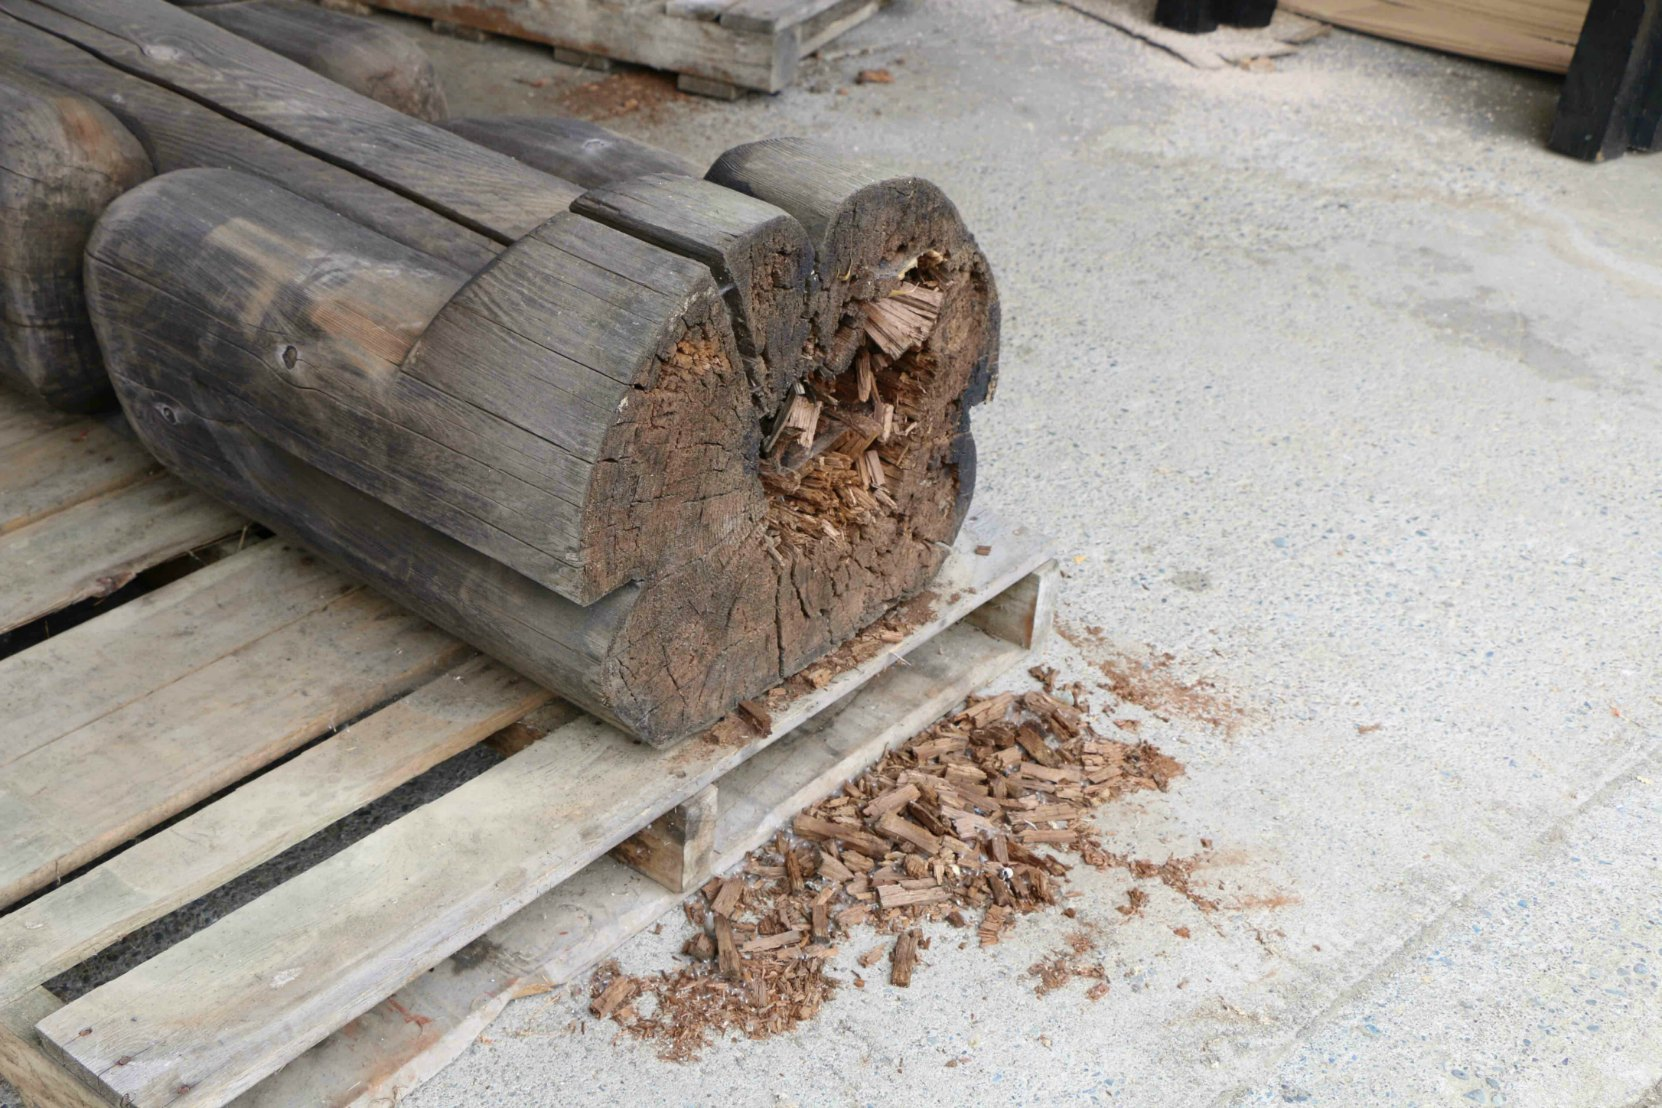 The base of Eagle Raven Bear, showing damage to wood, May 2016.